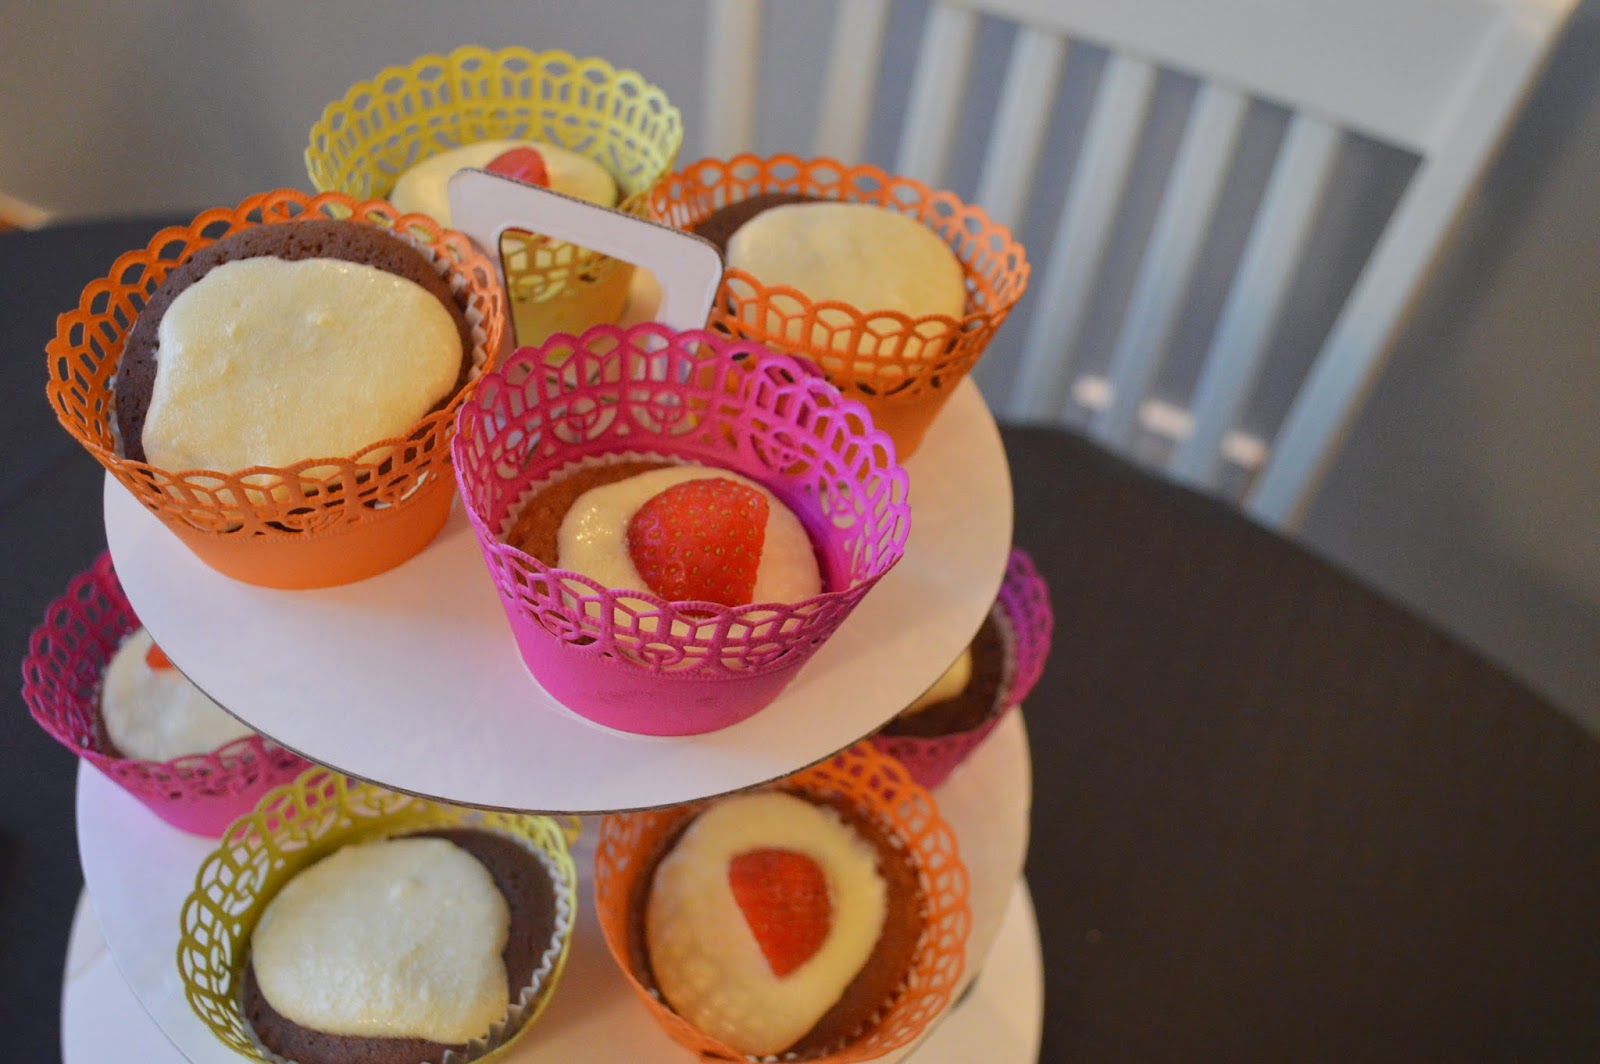 Cupcakes on paper cake stand